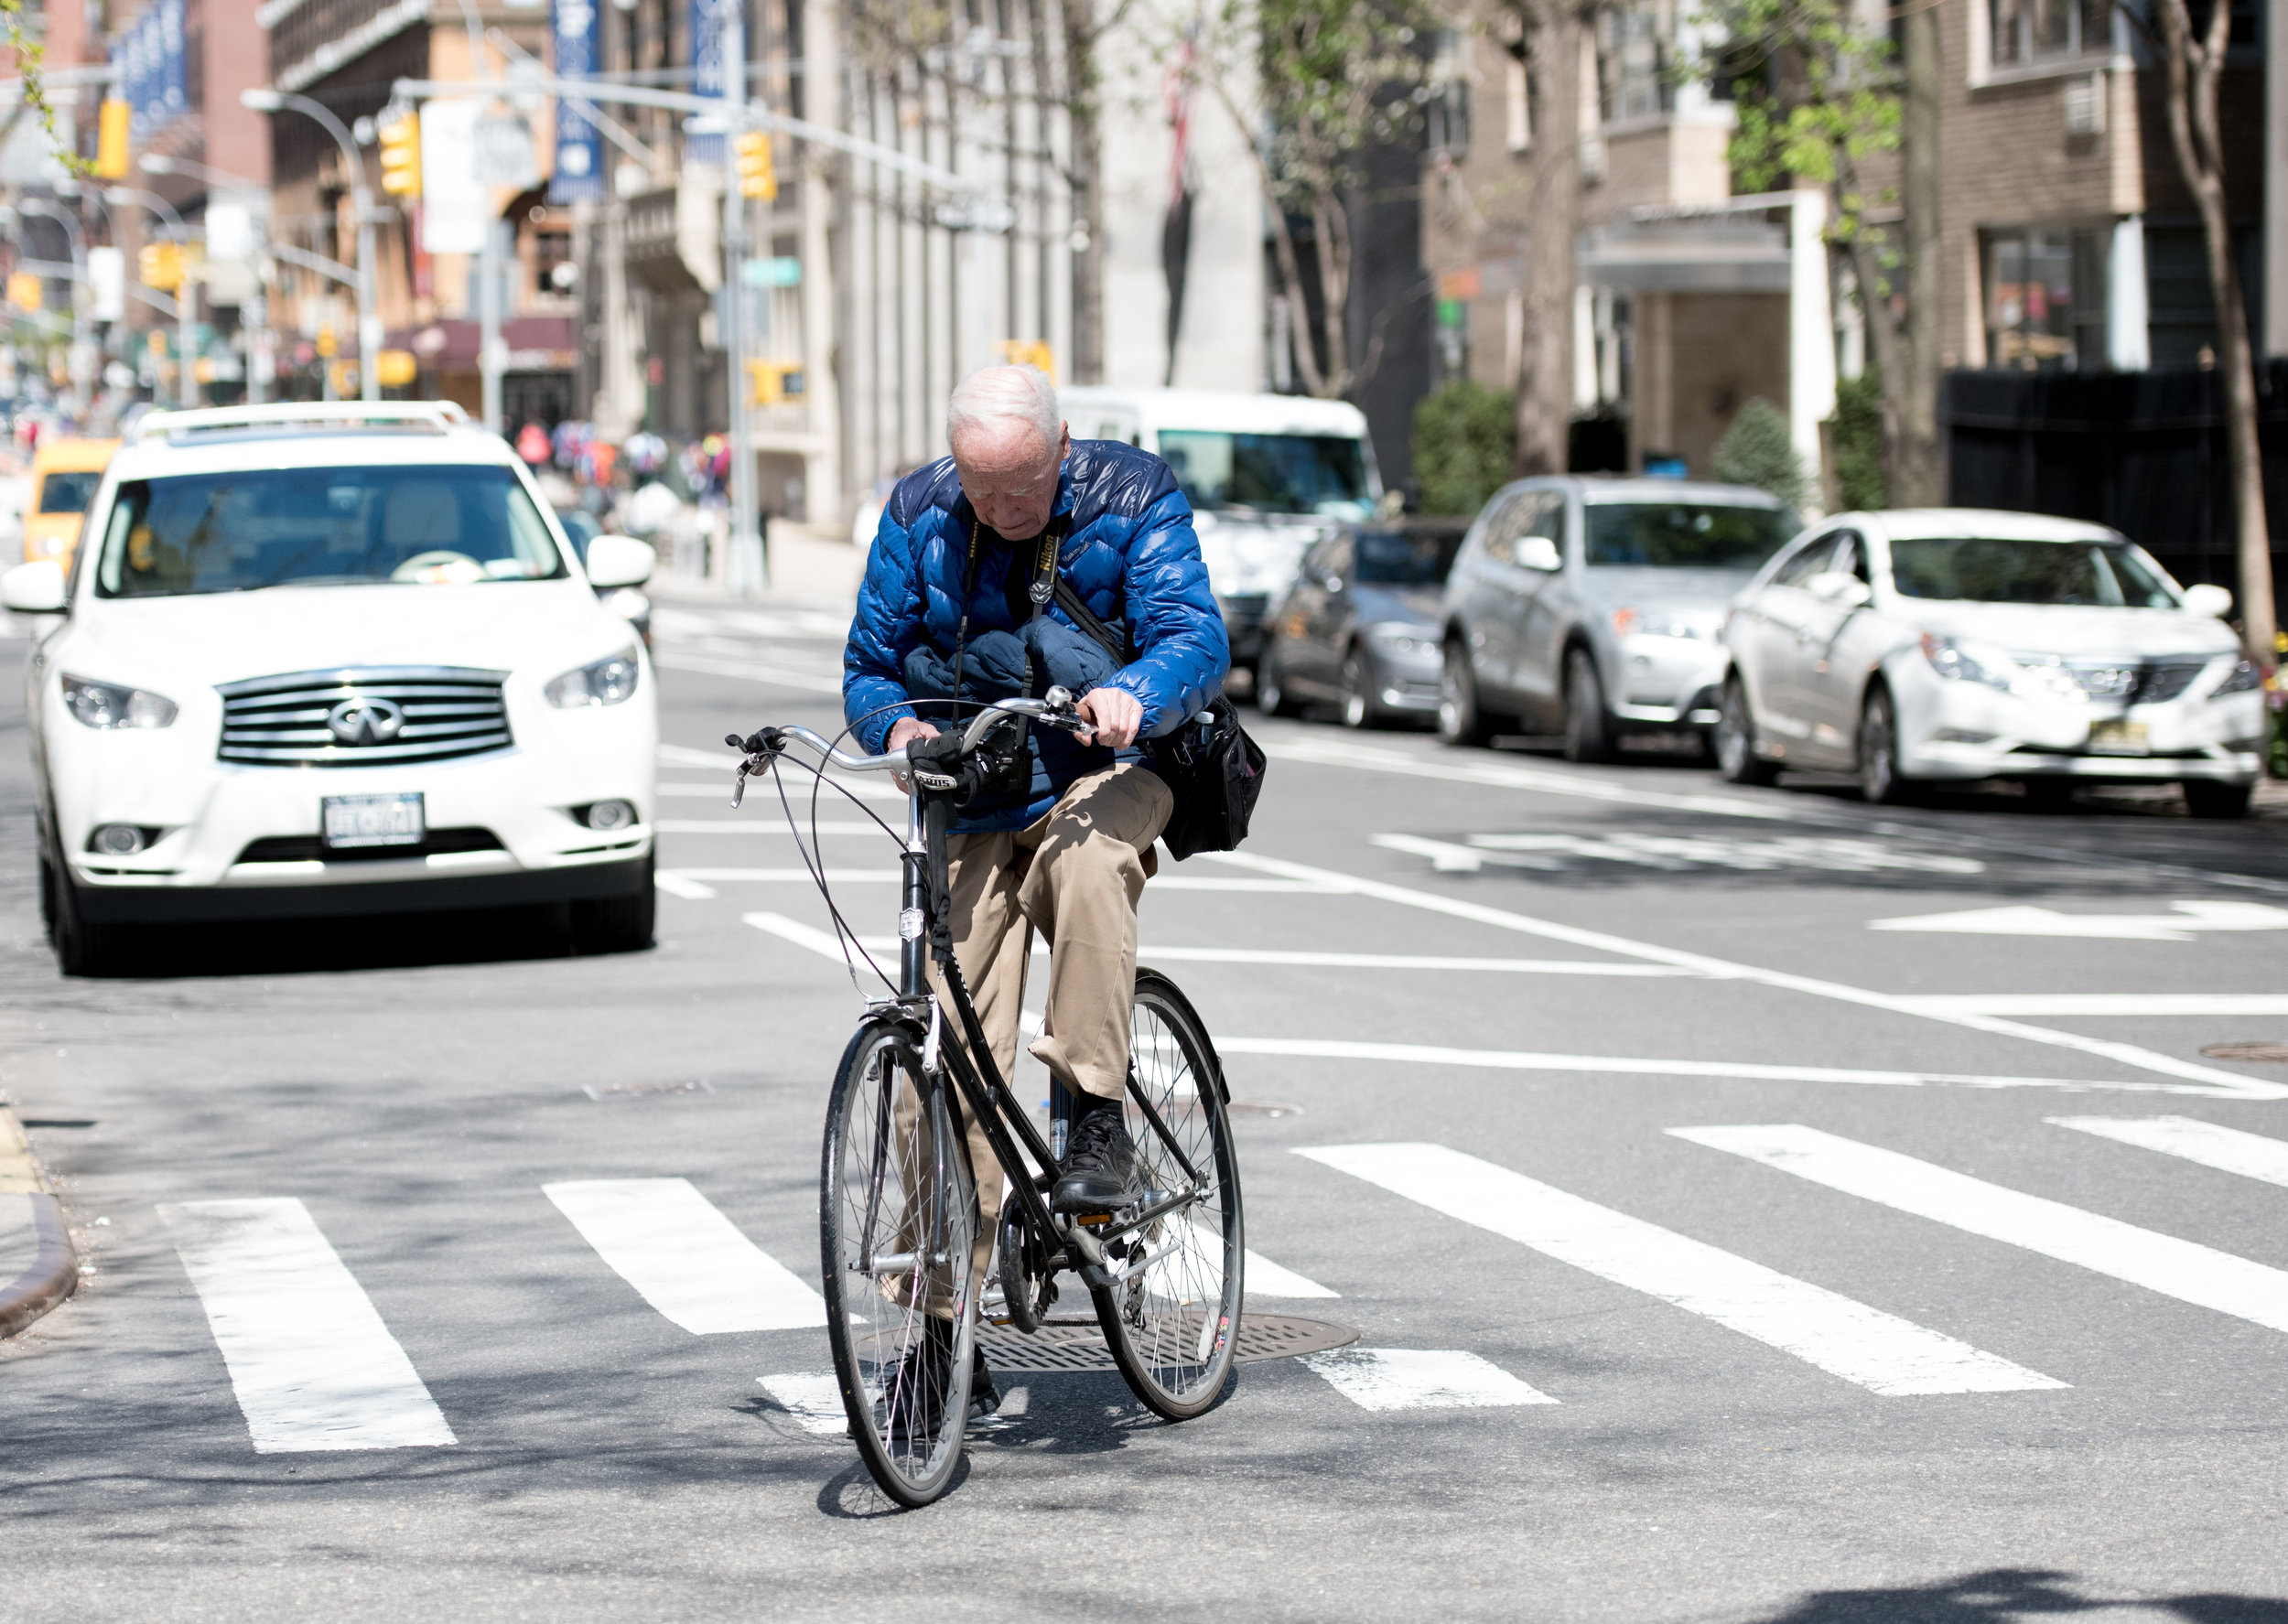 And then we spotted famous NY Times Photographer Bill Cunningham on his bike coming down Lexington Avenue.